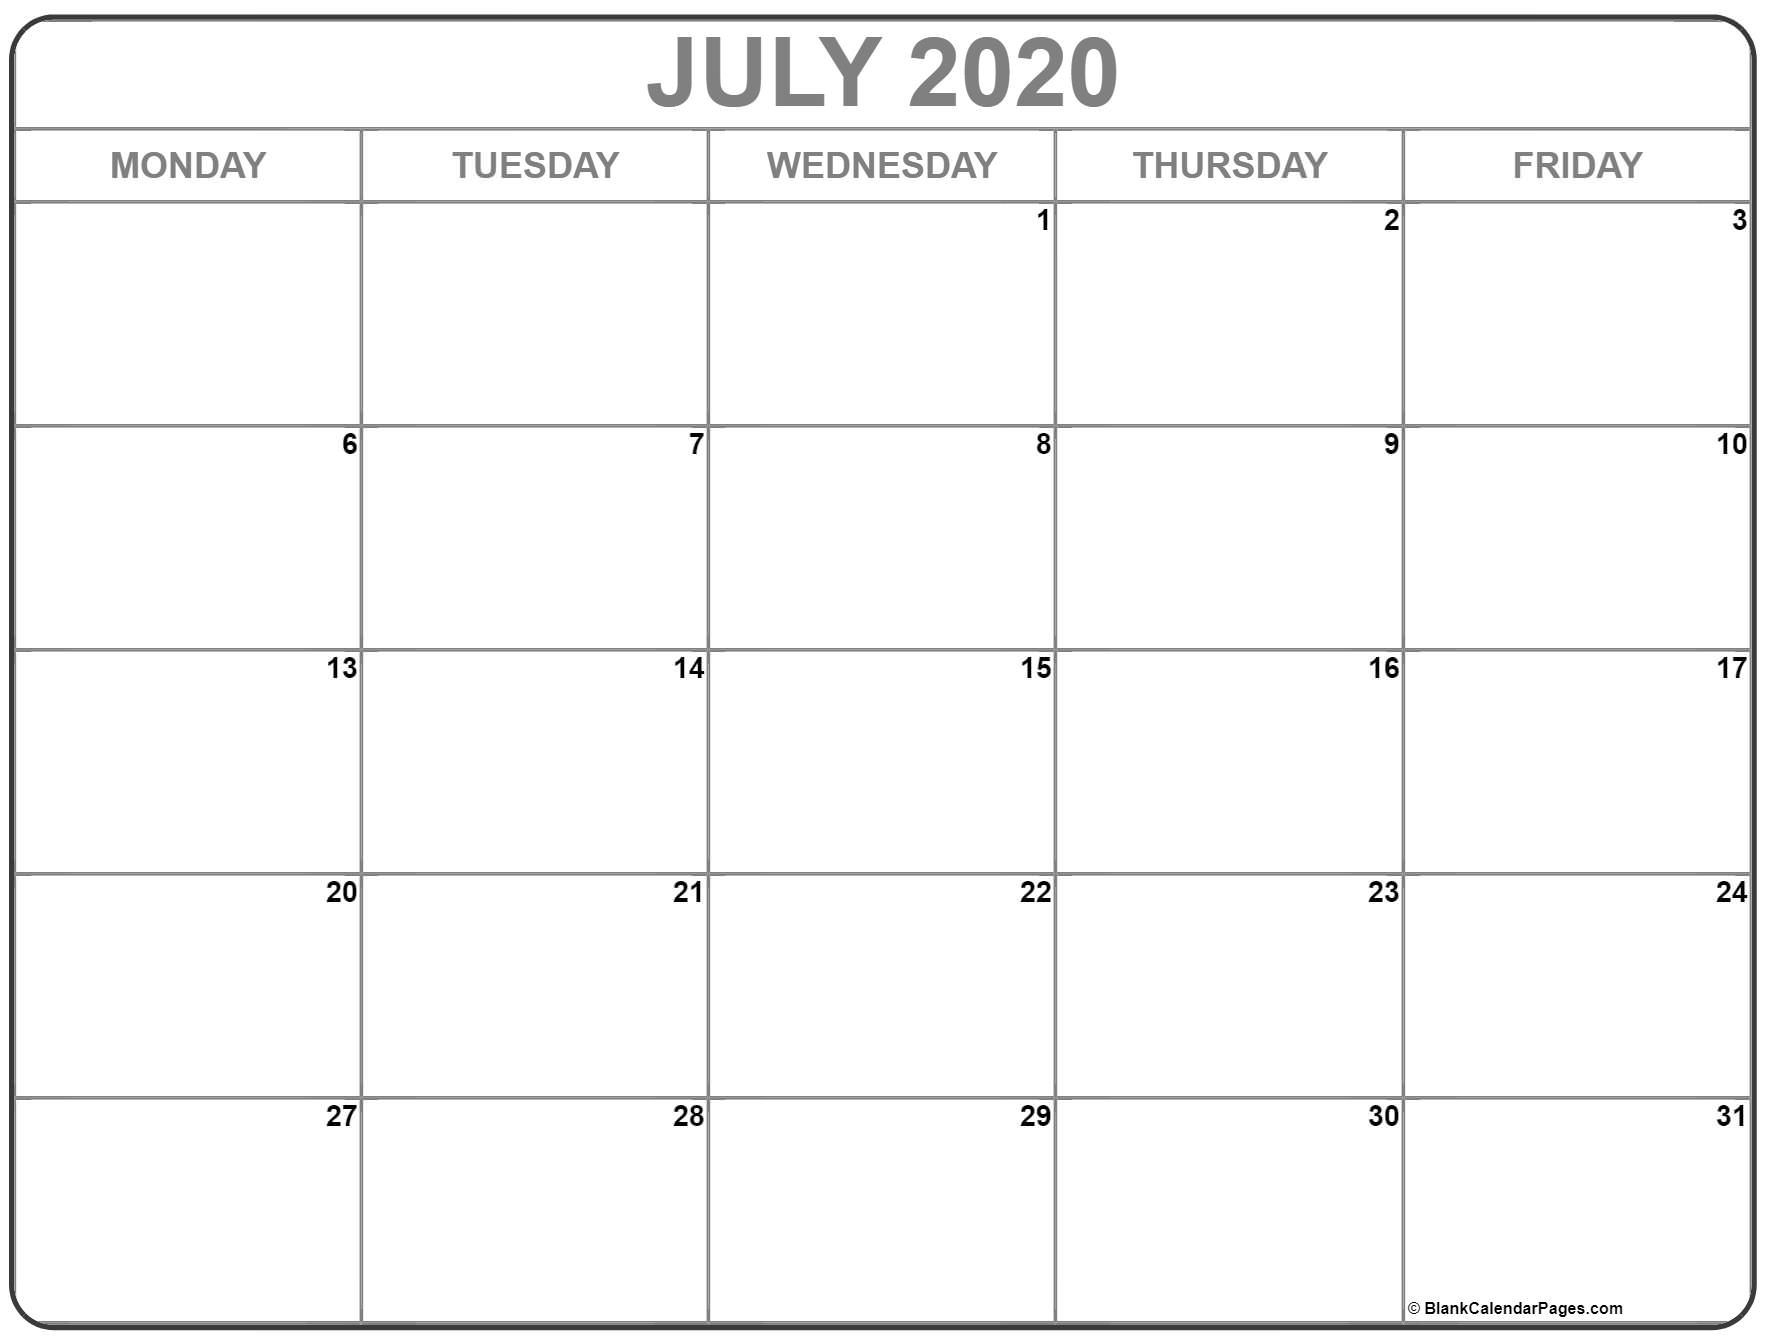 July 2020 Monday Calendar | Monday To Sunday